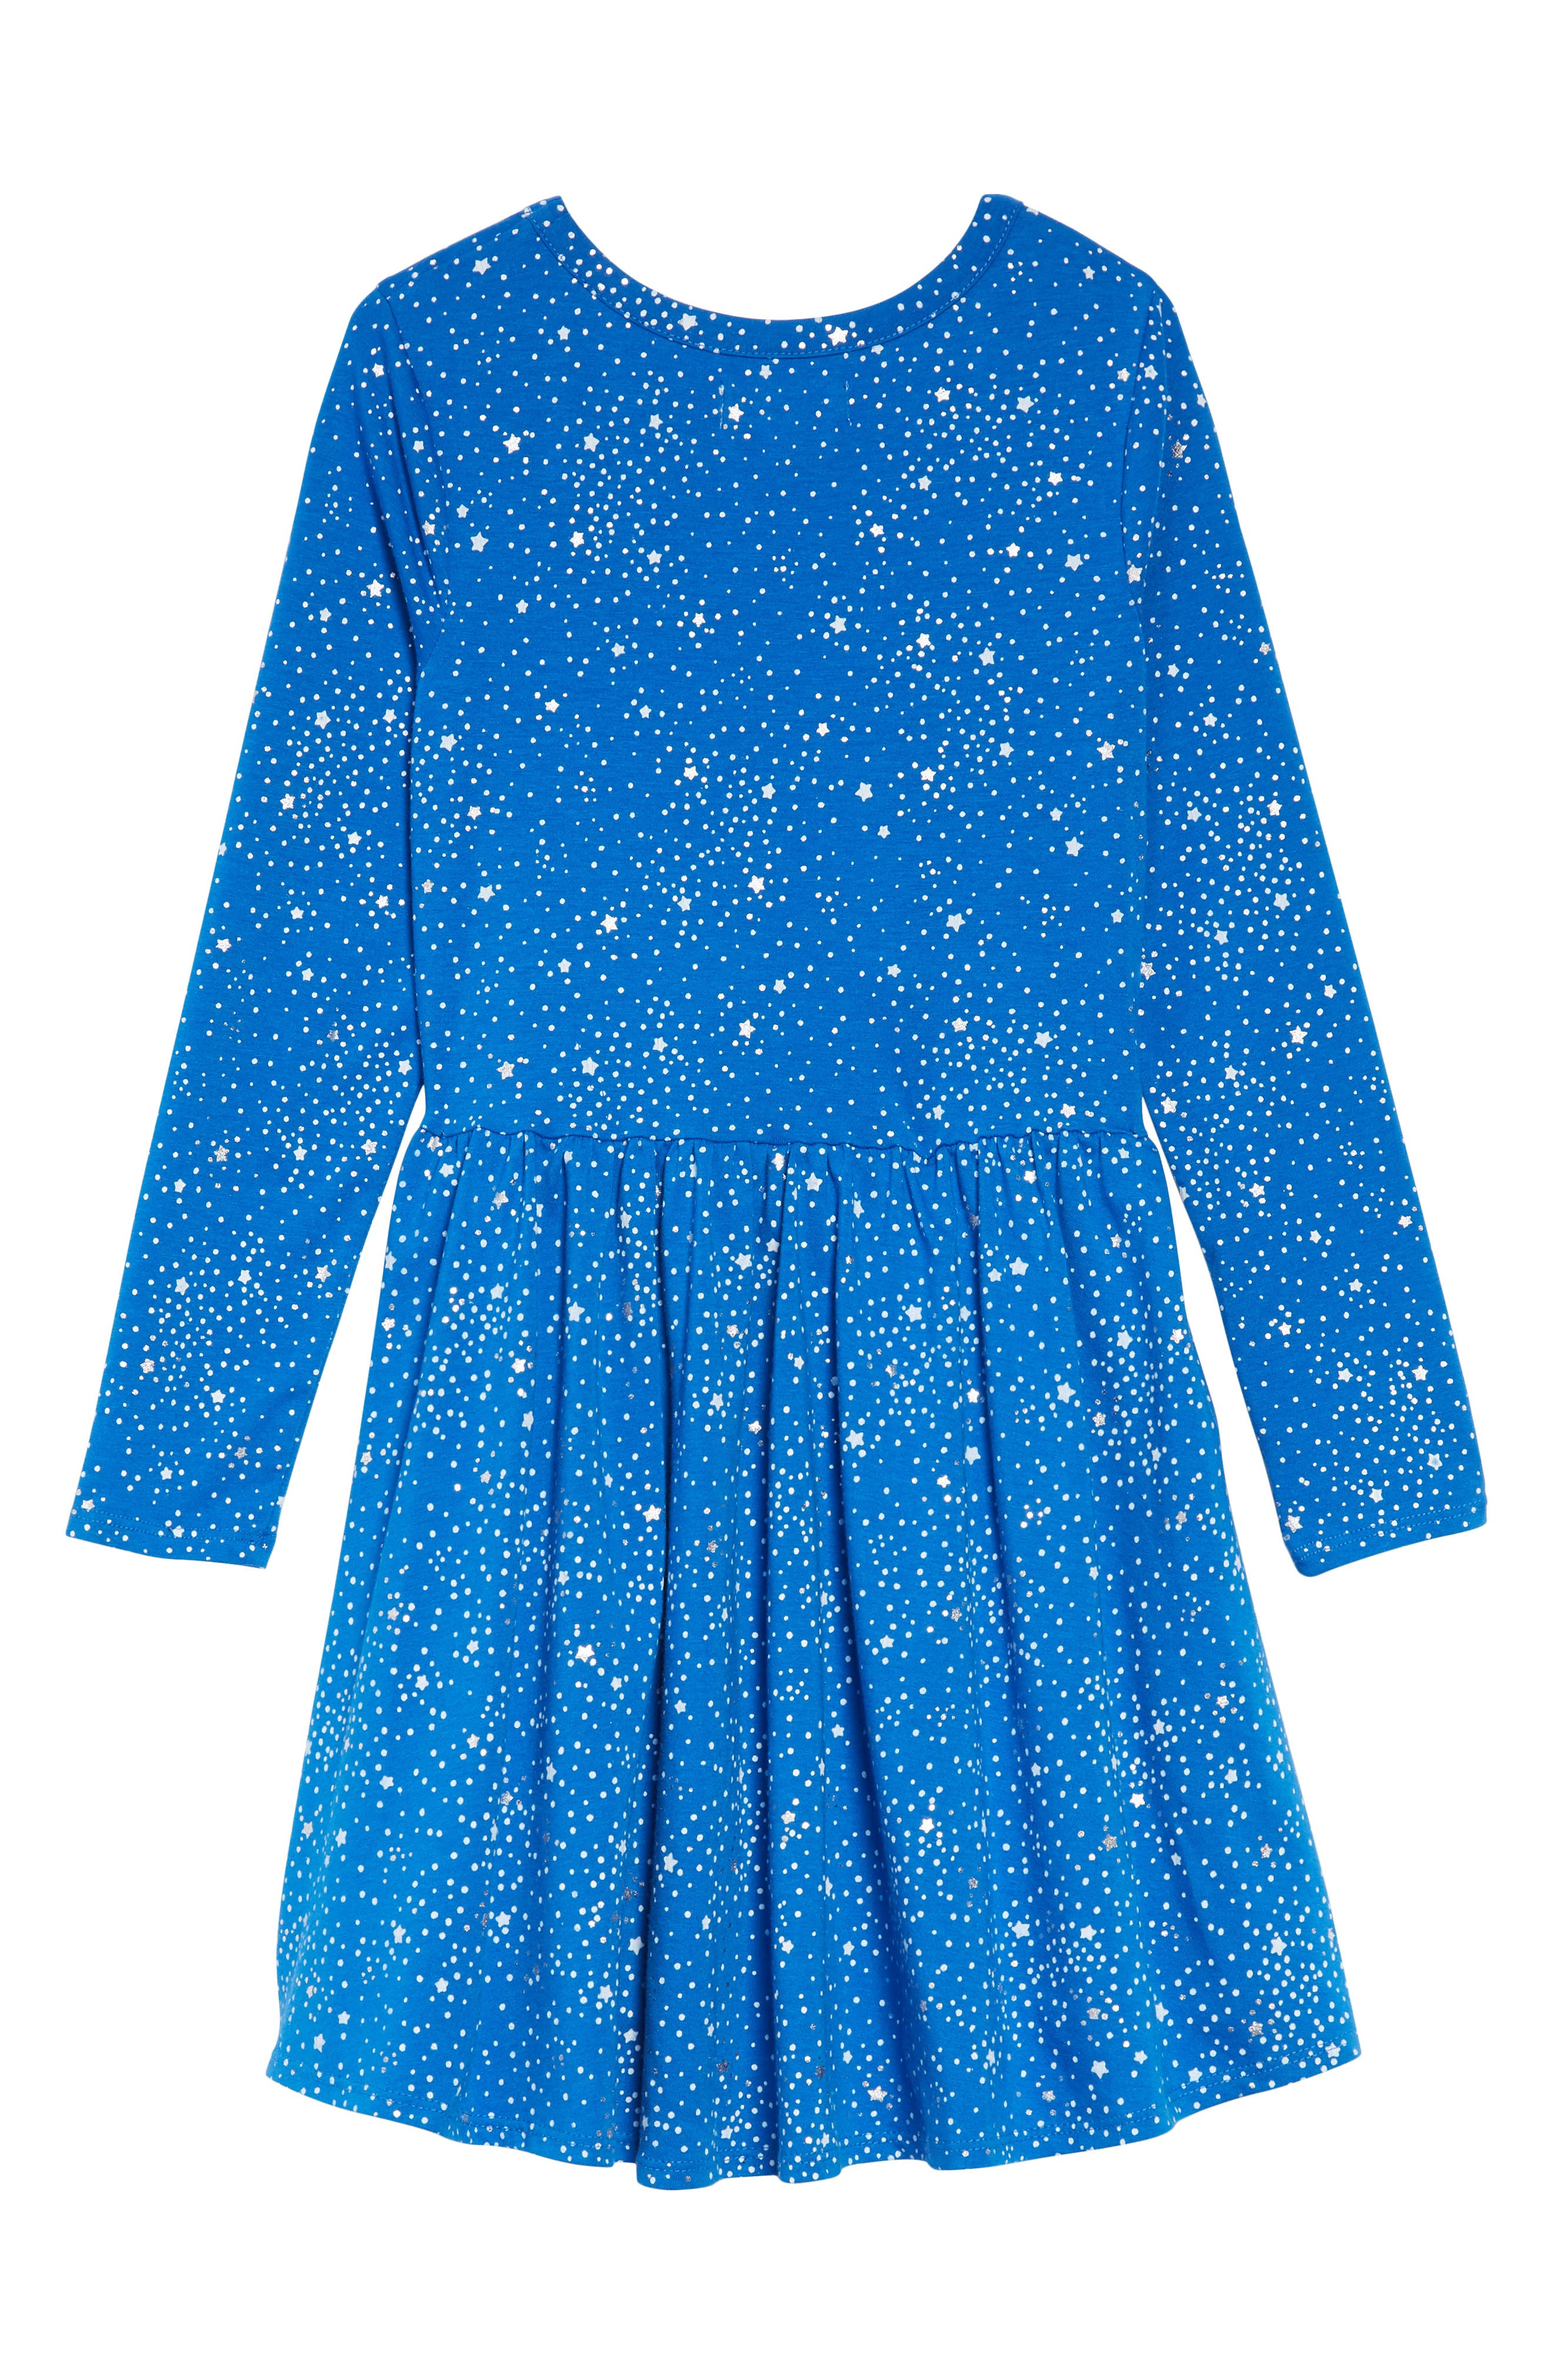 Print Knit Dress,                             Alternate thumbnail 2, color,                             BLUE PRINCESS SPOTS AND STARS